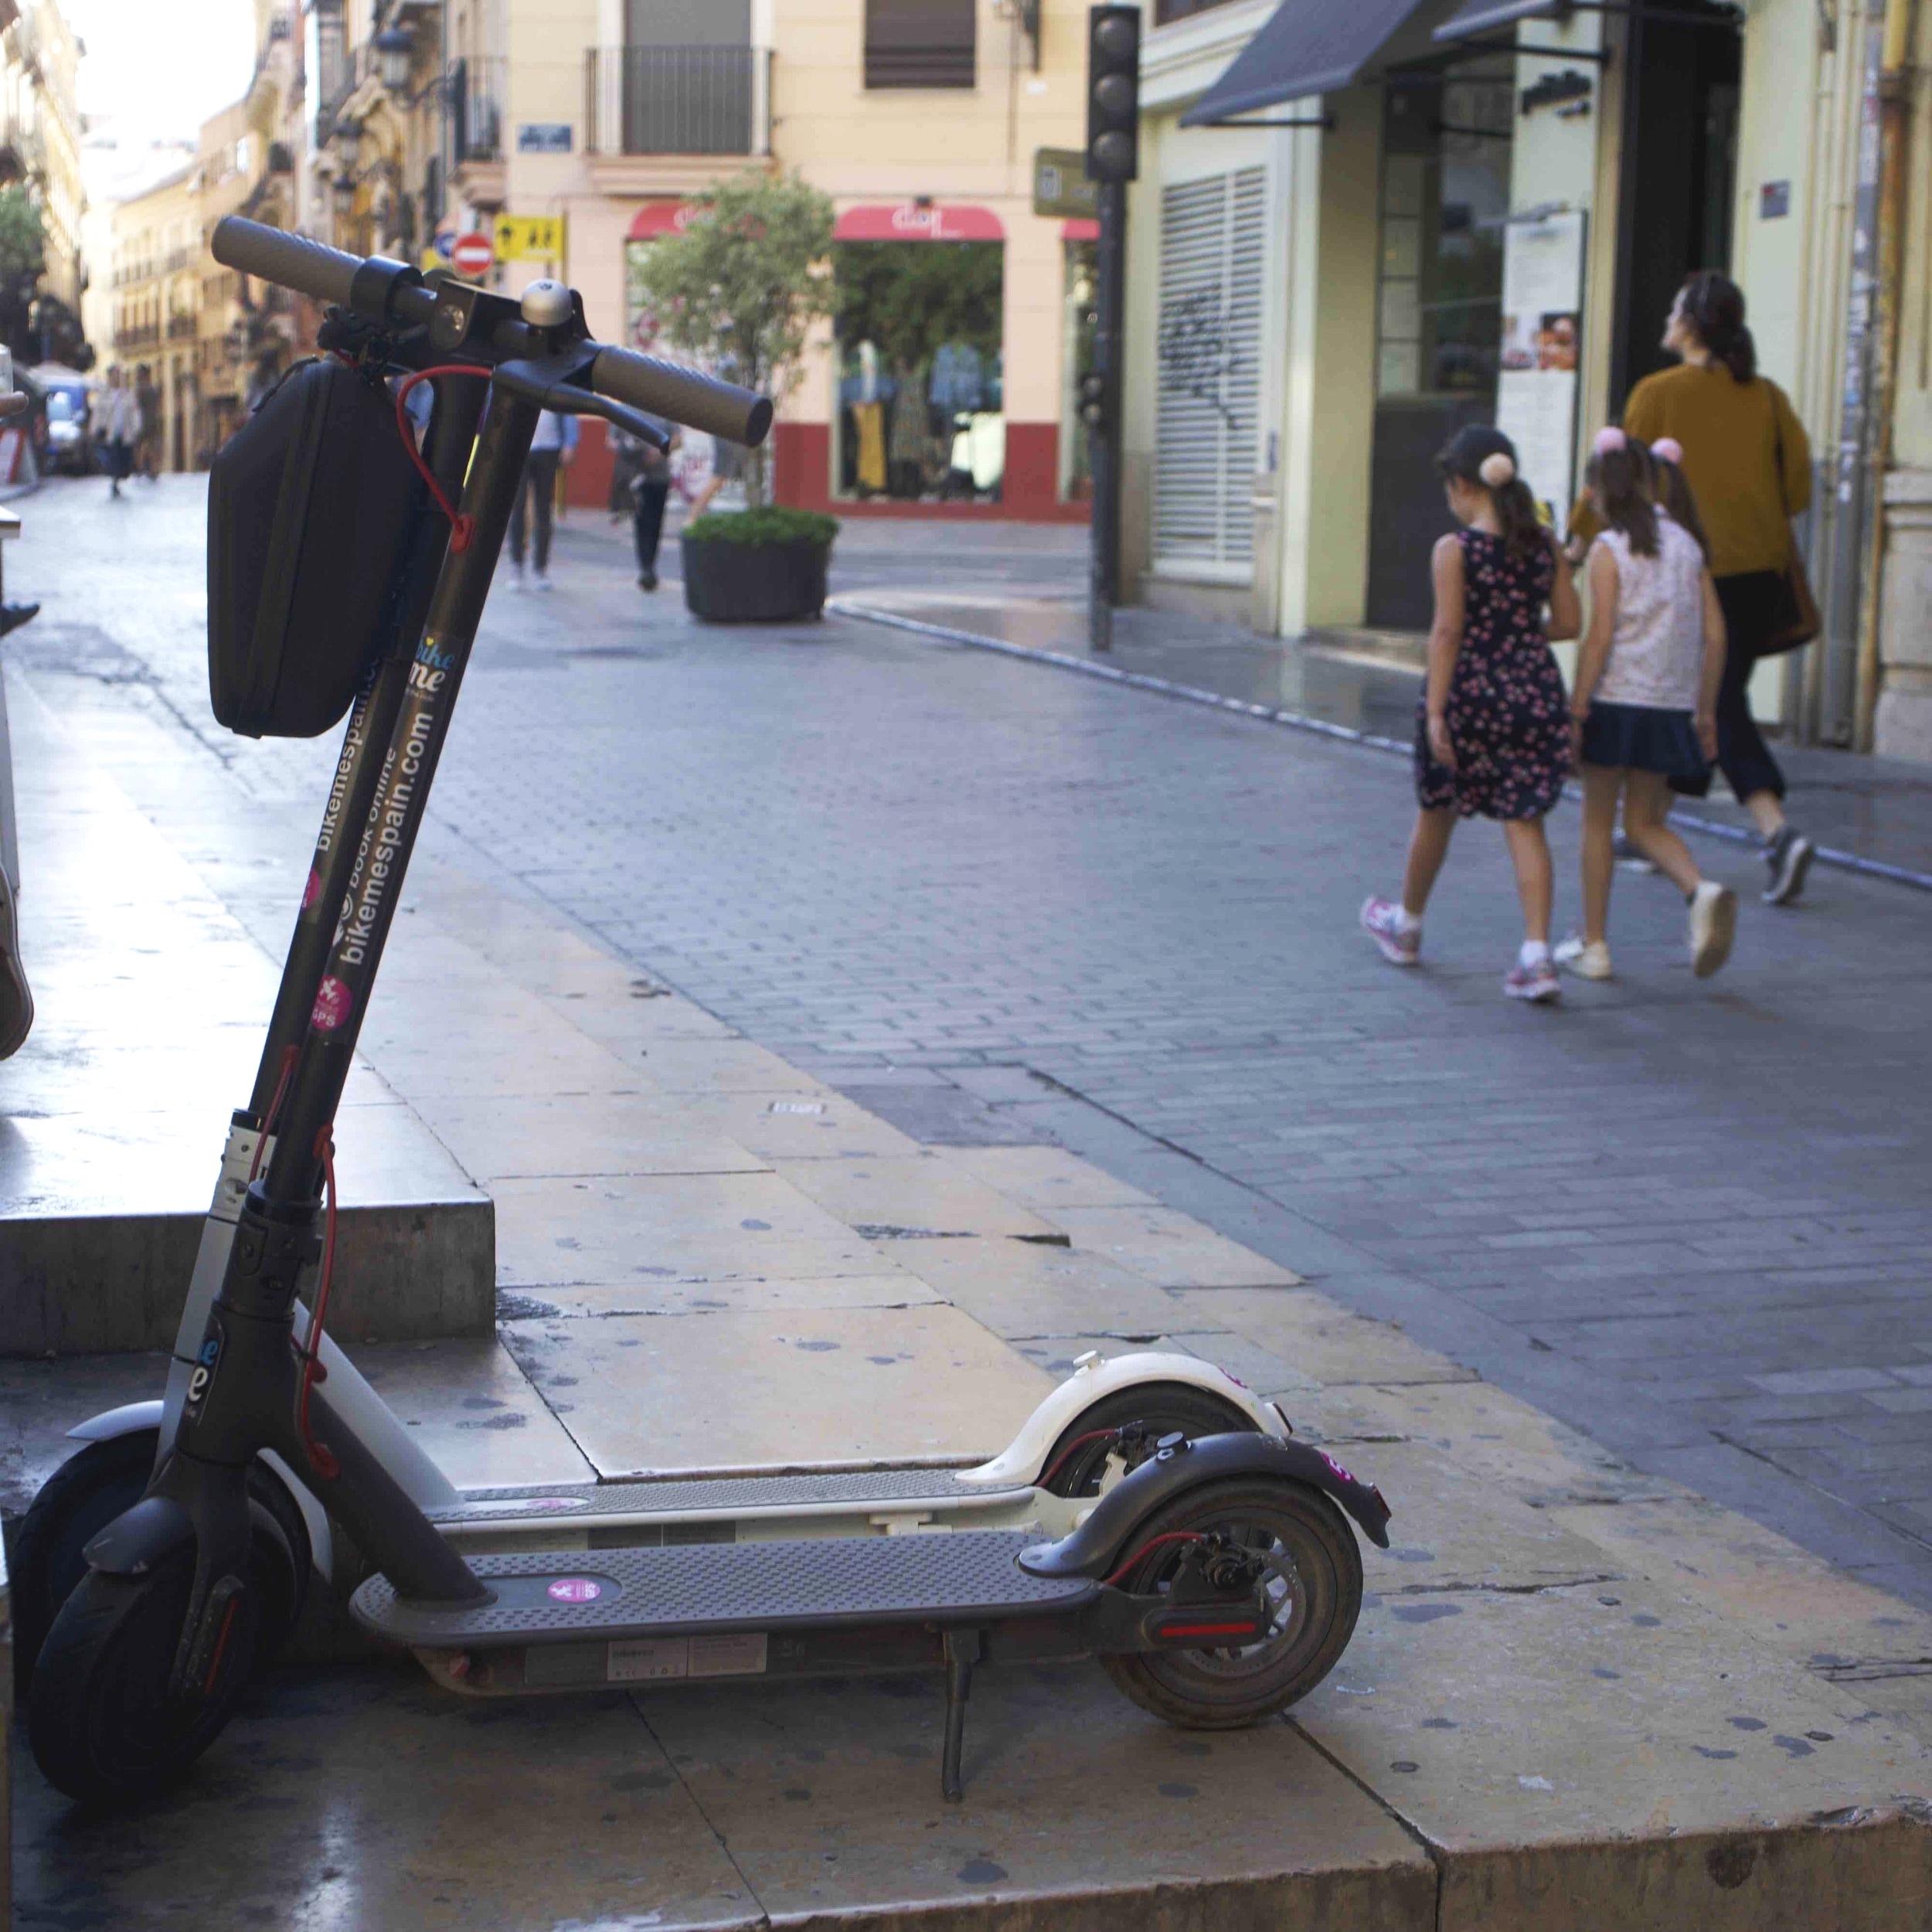 Electric scooters for hire - approx. €20 a day